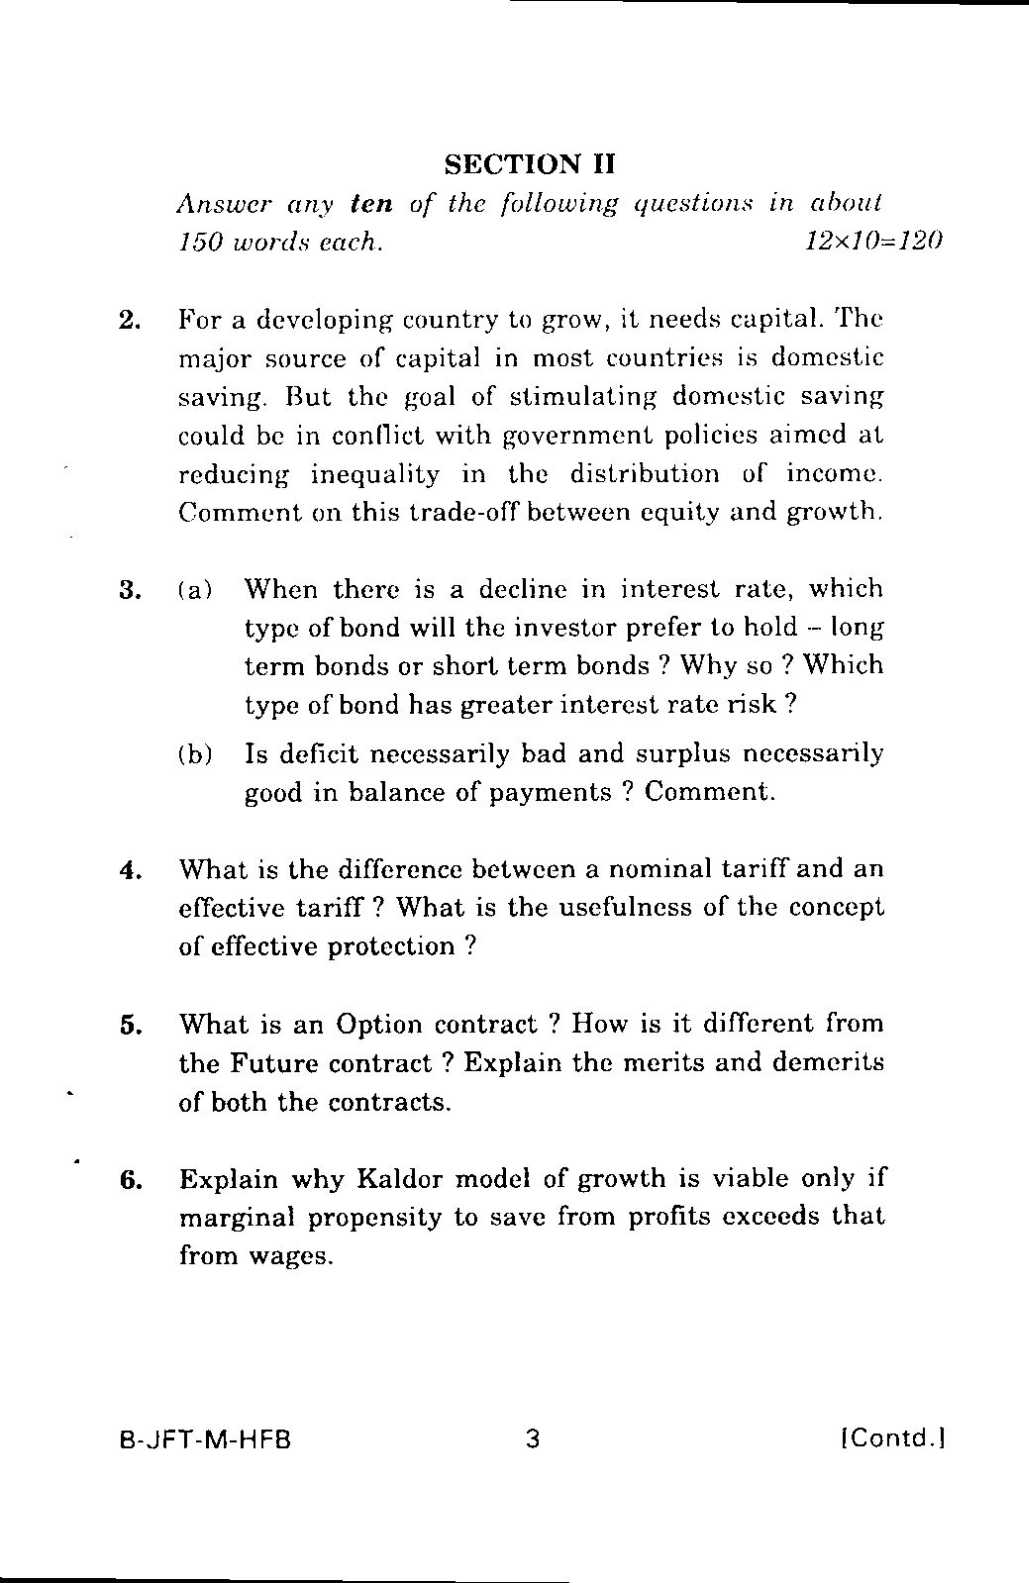 007 Essay Exampleord Definition Paper Extended Indian Economic Service Exam General Economics Ii Previous Years Question P How Long Torite Should It Take Me Is Stunning A 250 Word Does Look What 300 Like Full